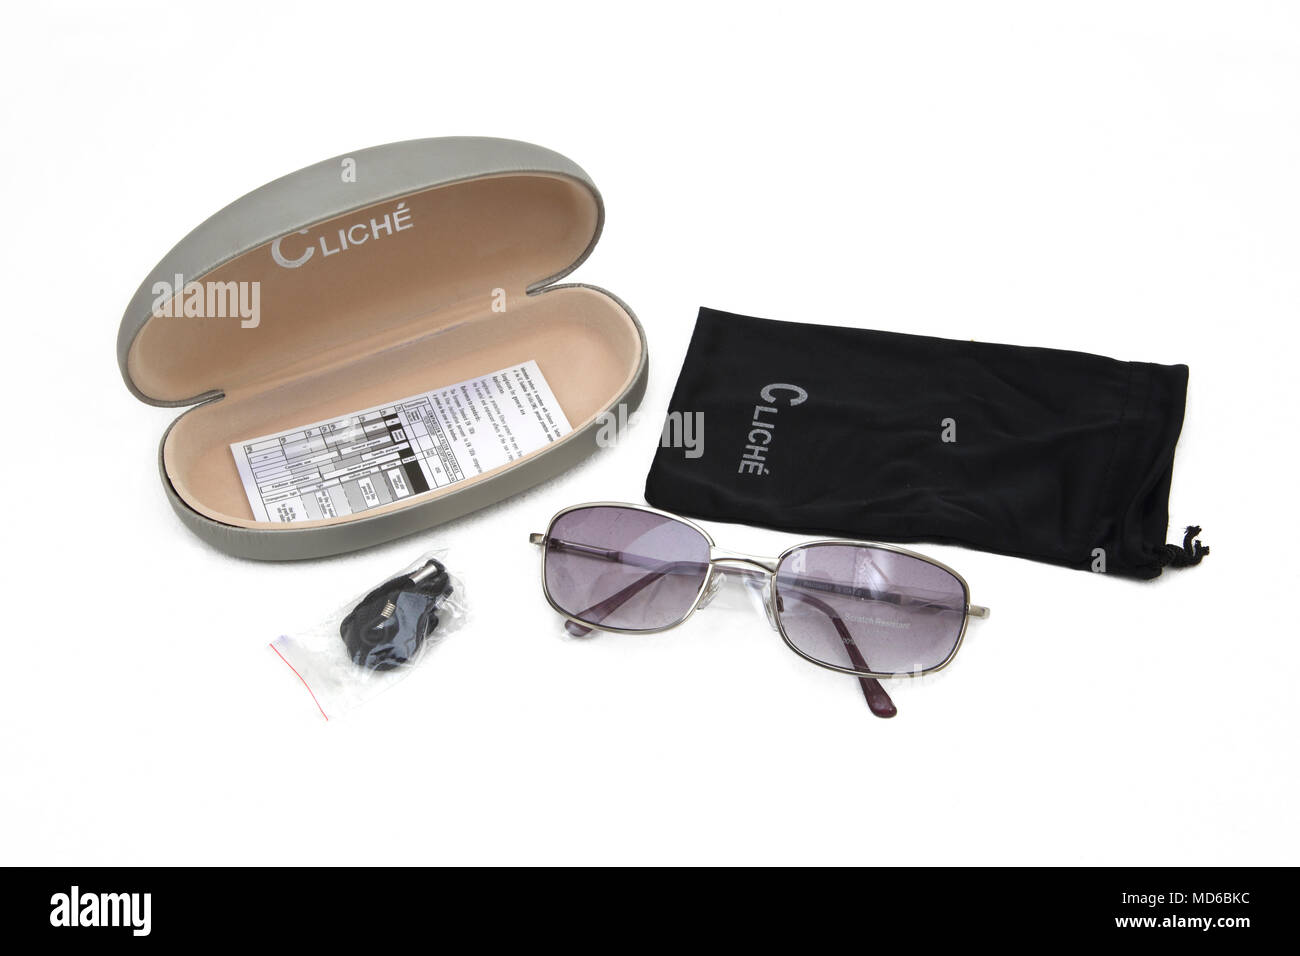 Cliche' UV Tinted Sunglasses hard and Soft Cases - Stock Image